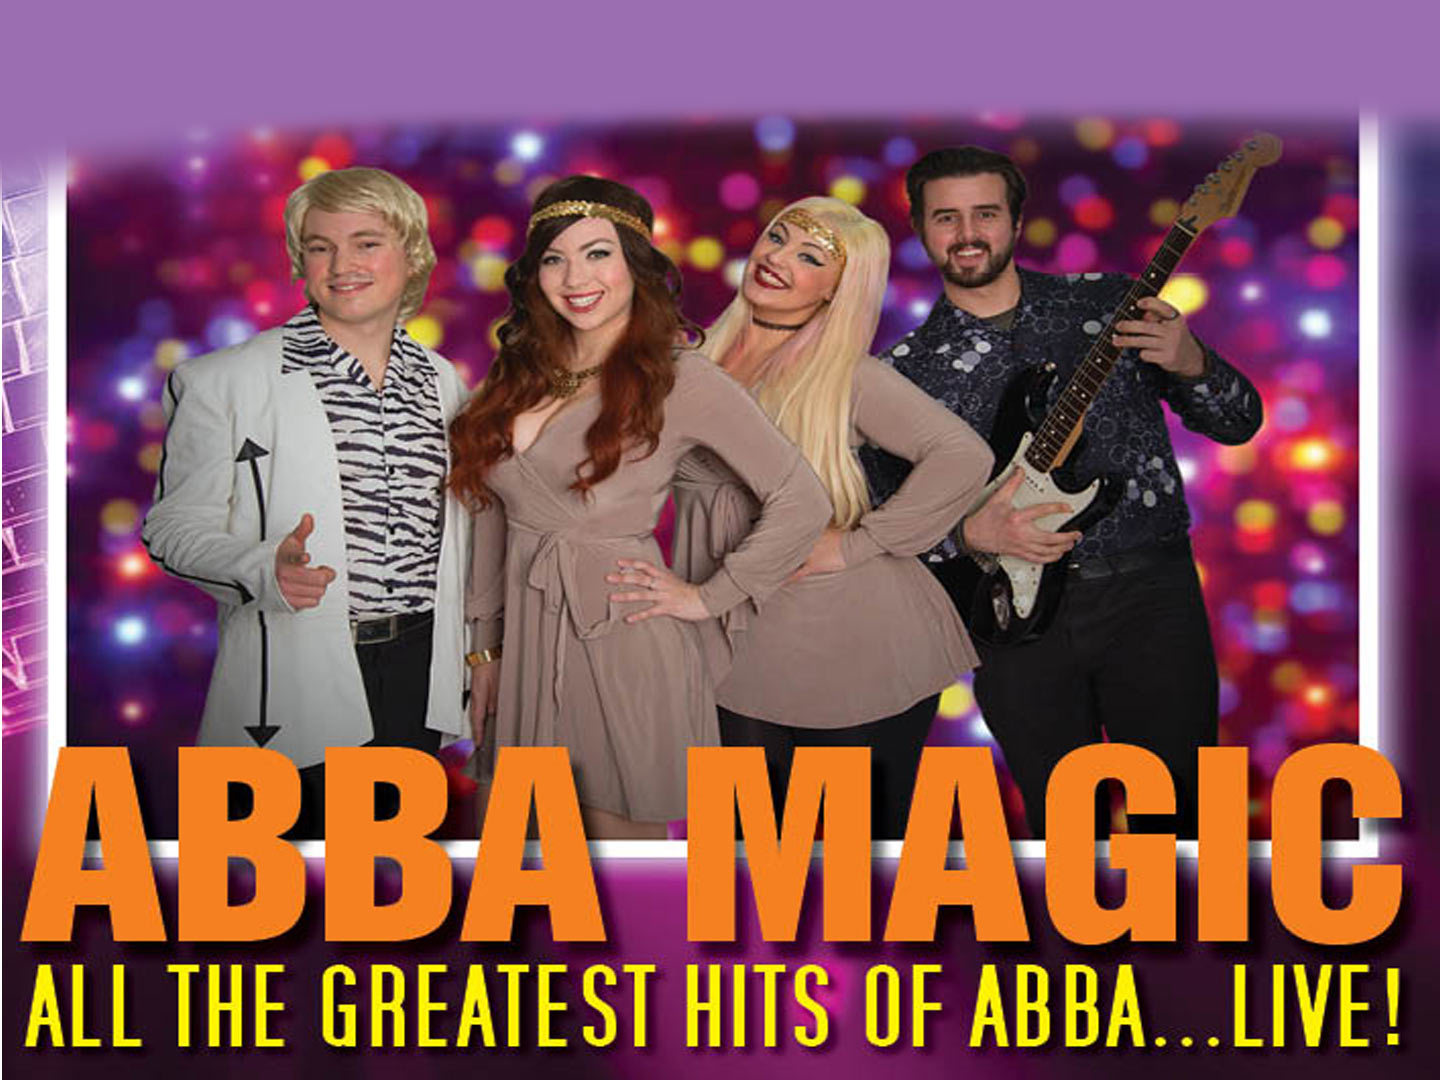 Promotional image for Abba Magic